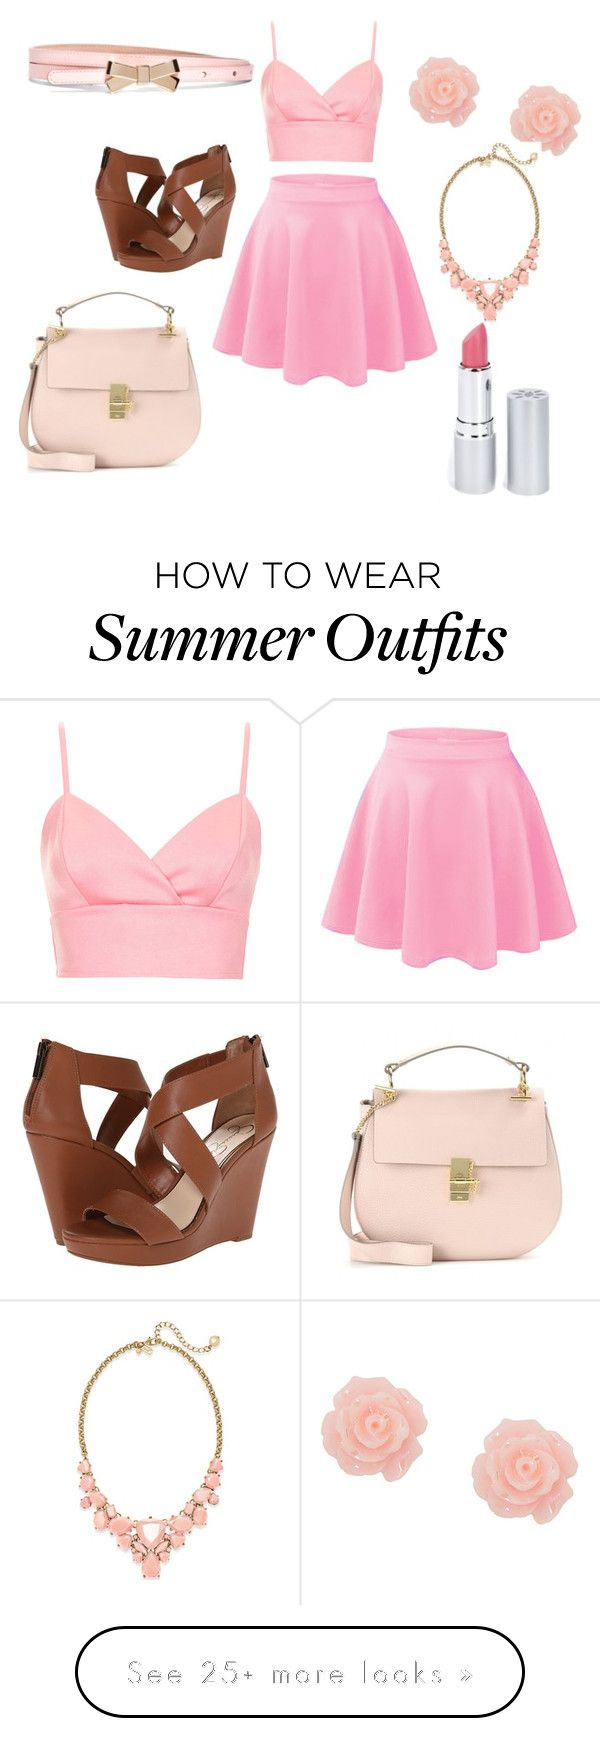 """""""Cute summer outfit"""" by darb97 on Polyvore featuring Jessica Simpson, Topshop, Kate Spade, Brooks Brothers, Chloé and HoneyBee Gardens"""